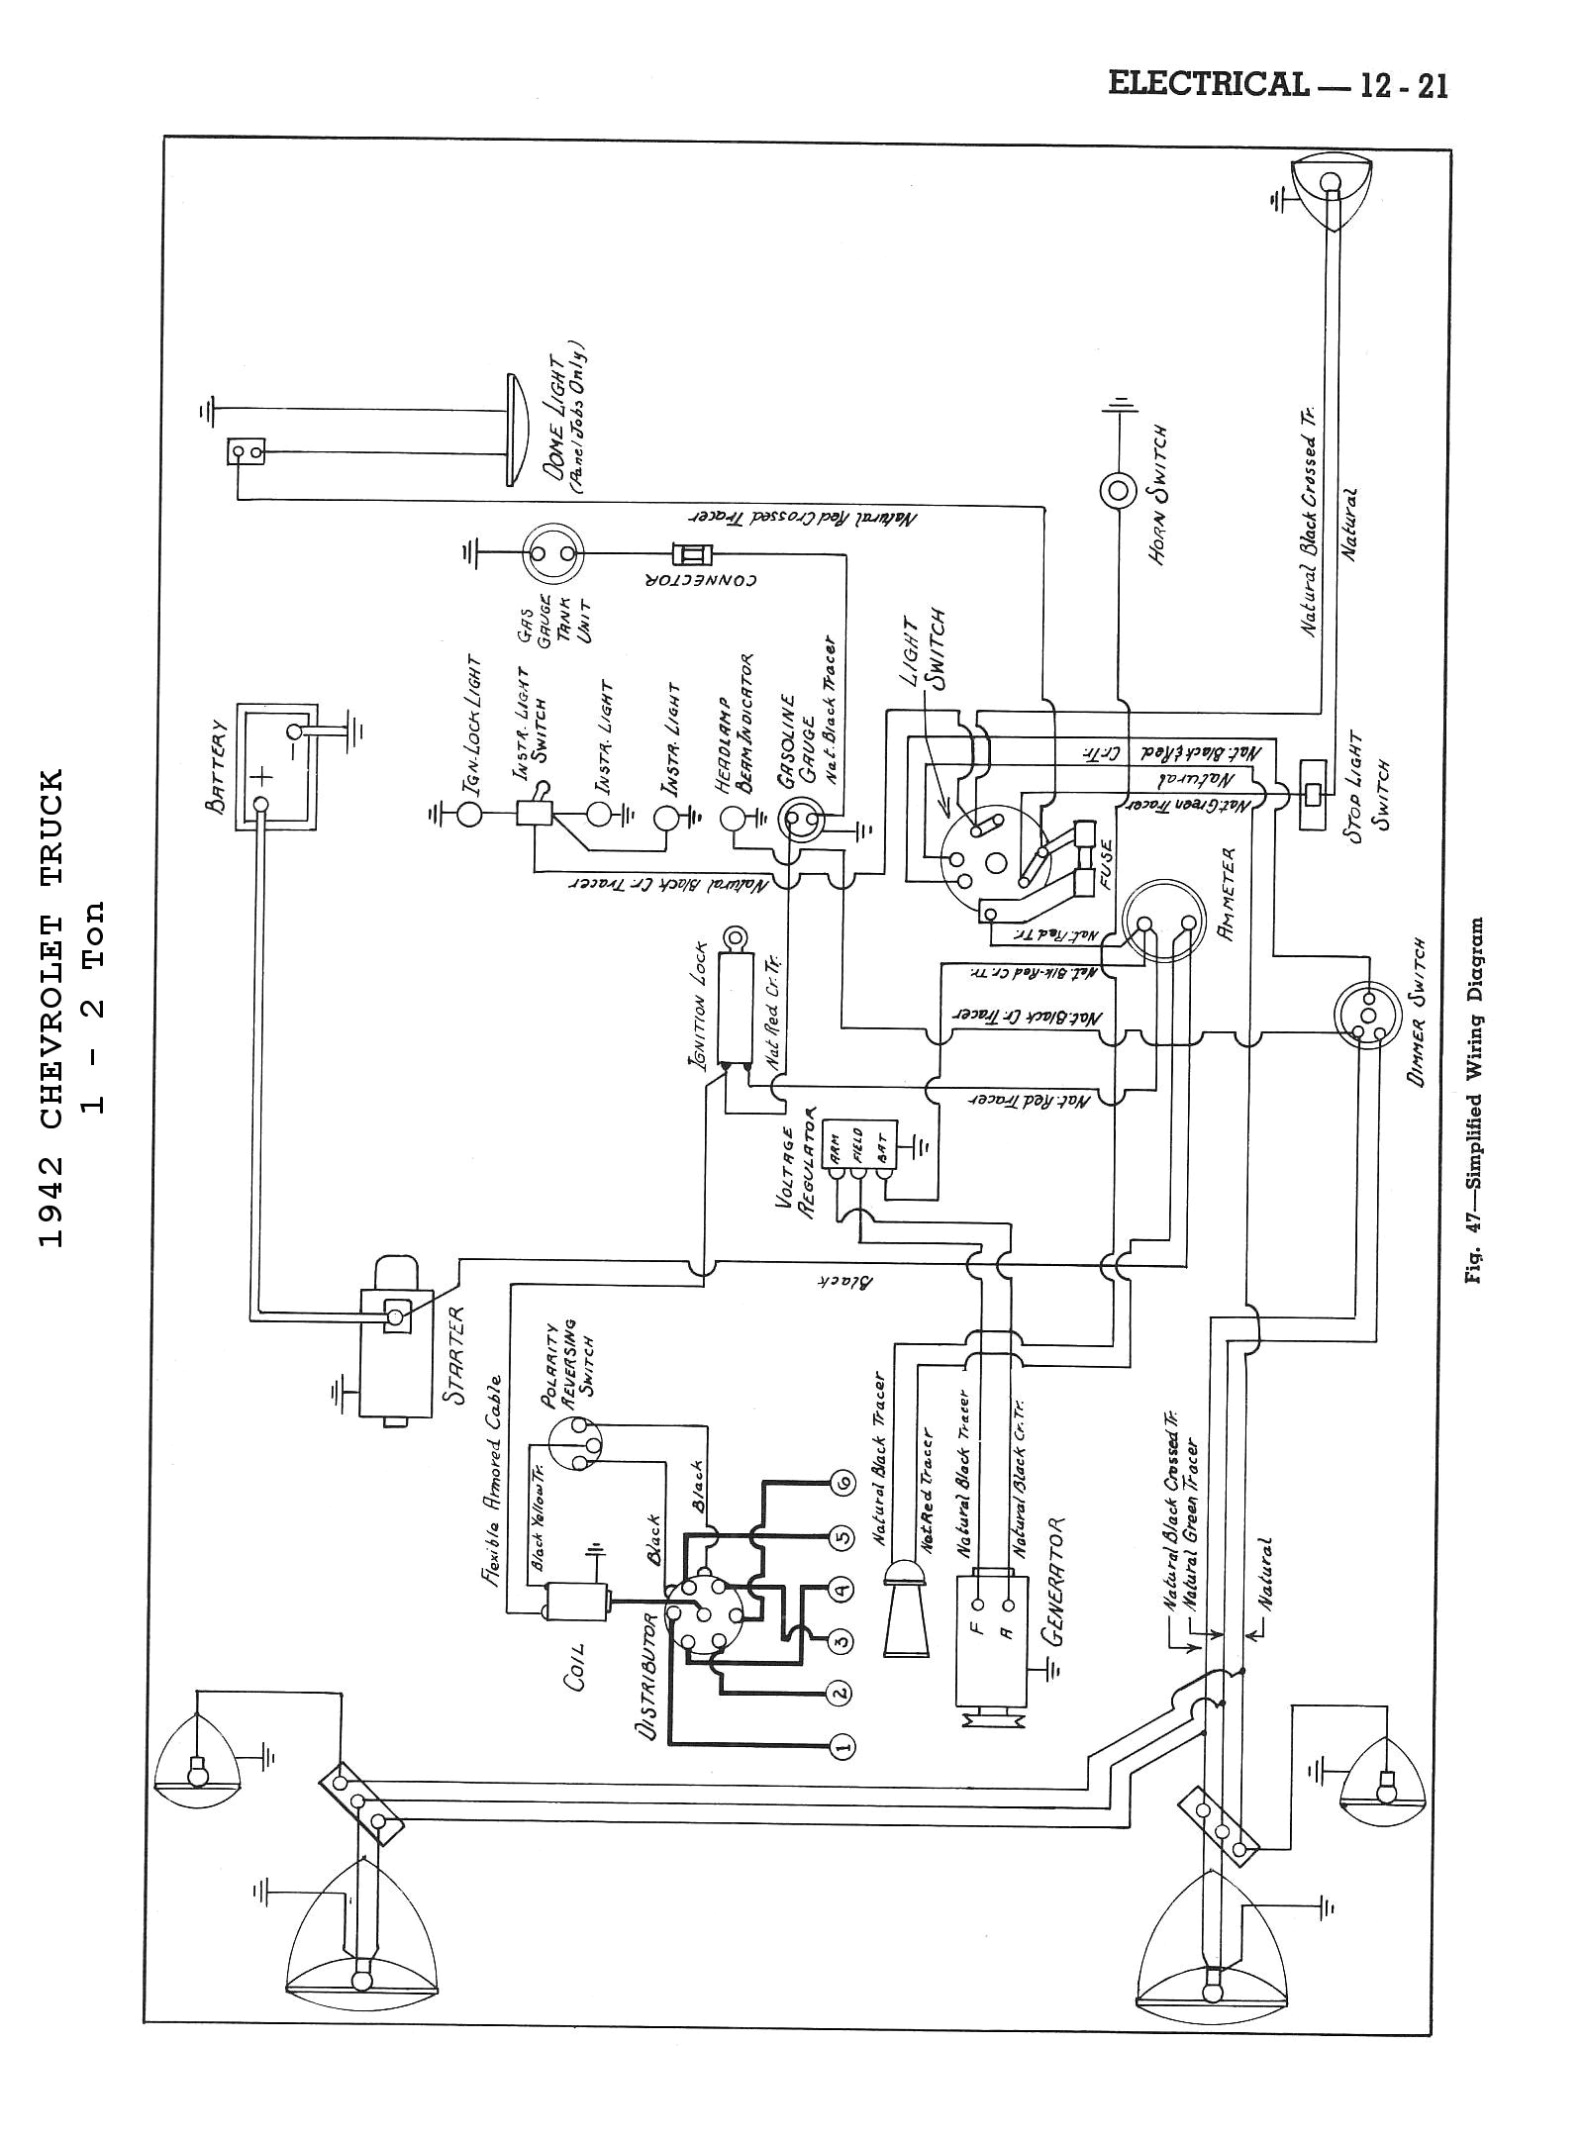 Circuit and Wiring Diagrams Periodic Table Yellow Best Of Series Circuit Diagram Turn Signal